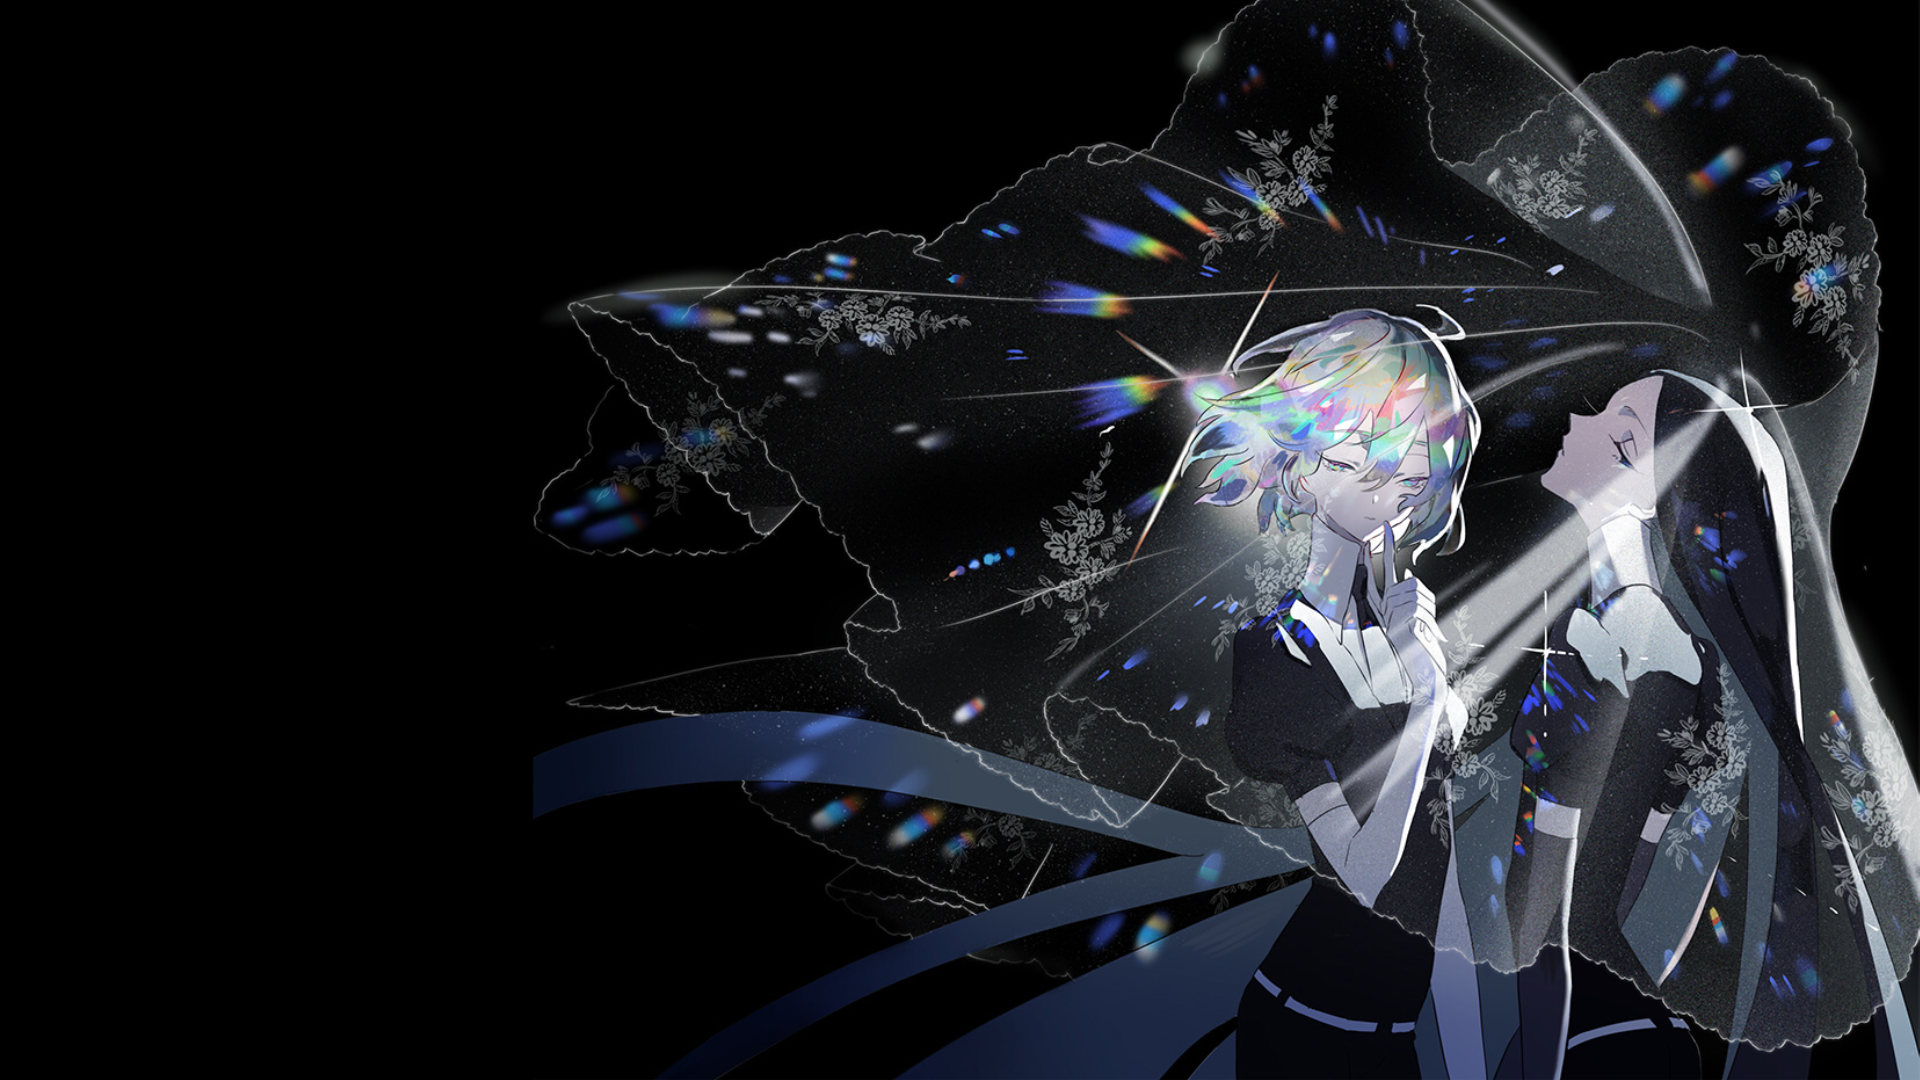 Land Of The Lustrous Bort Diamond 2 Ps4wallpapers Com